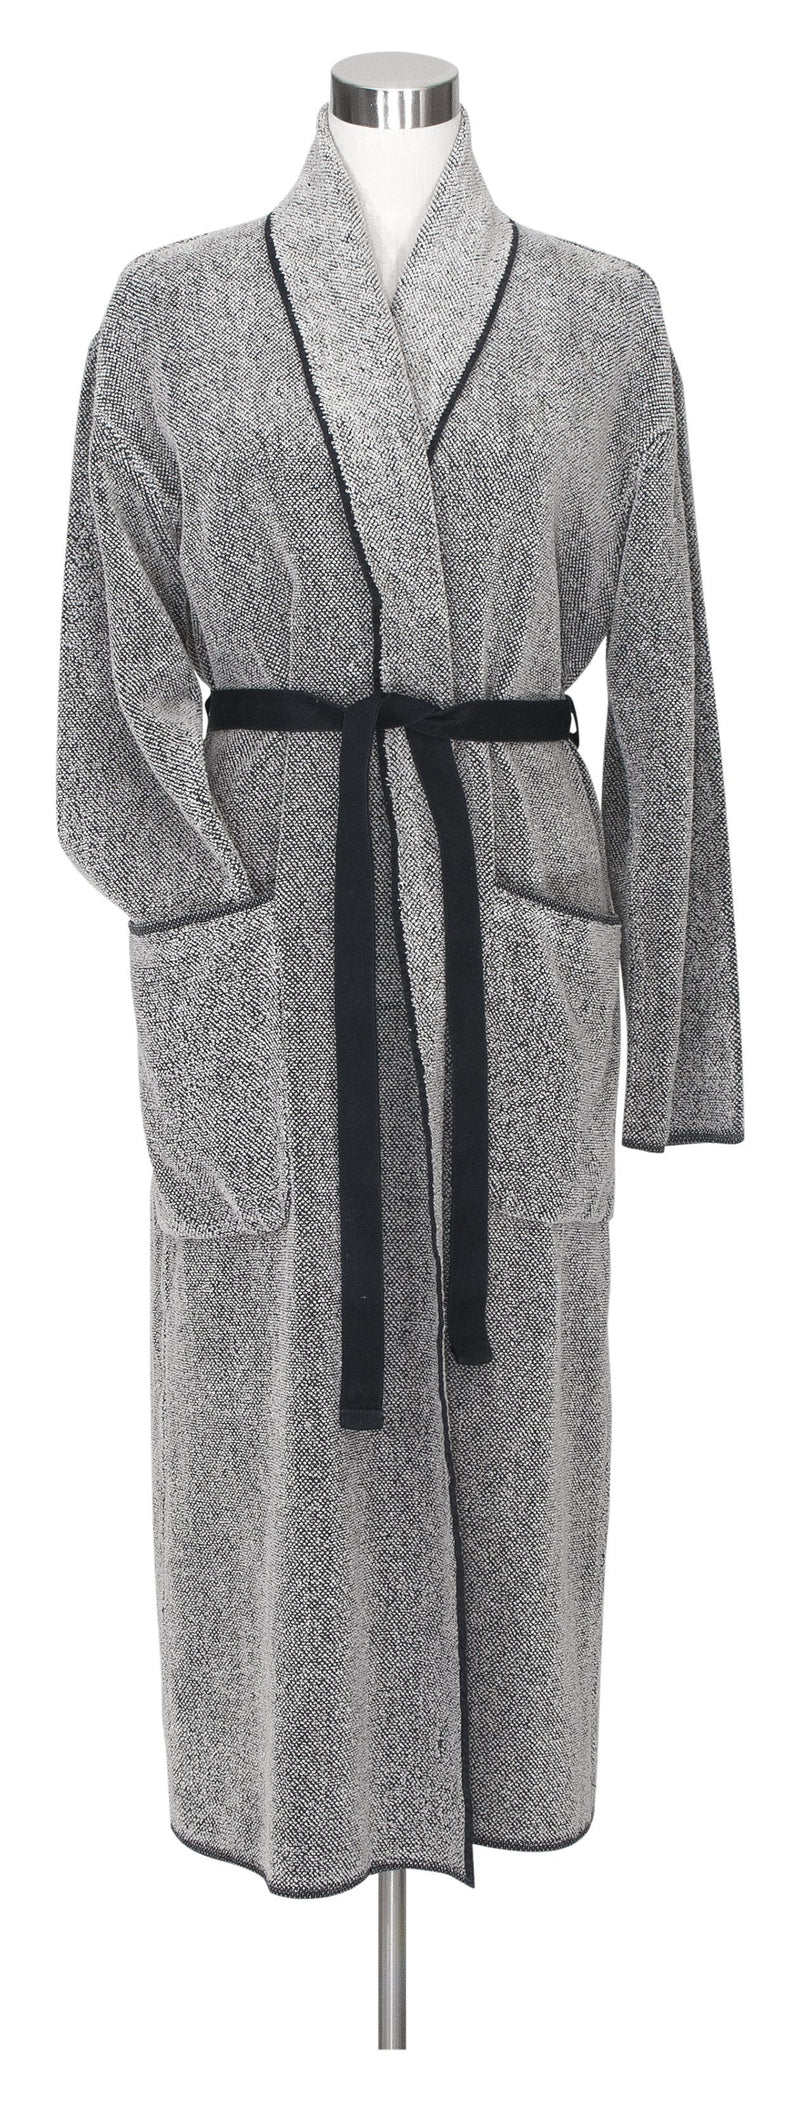 Leibona Bathrobe S Kivi Bathrobe | Black Washed Linen